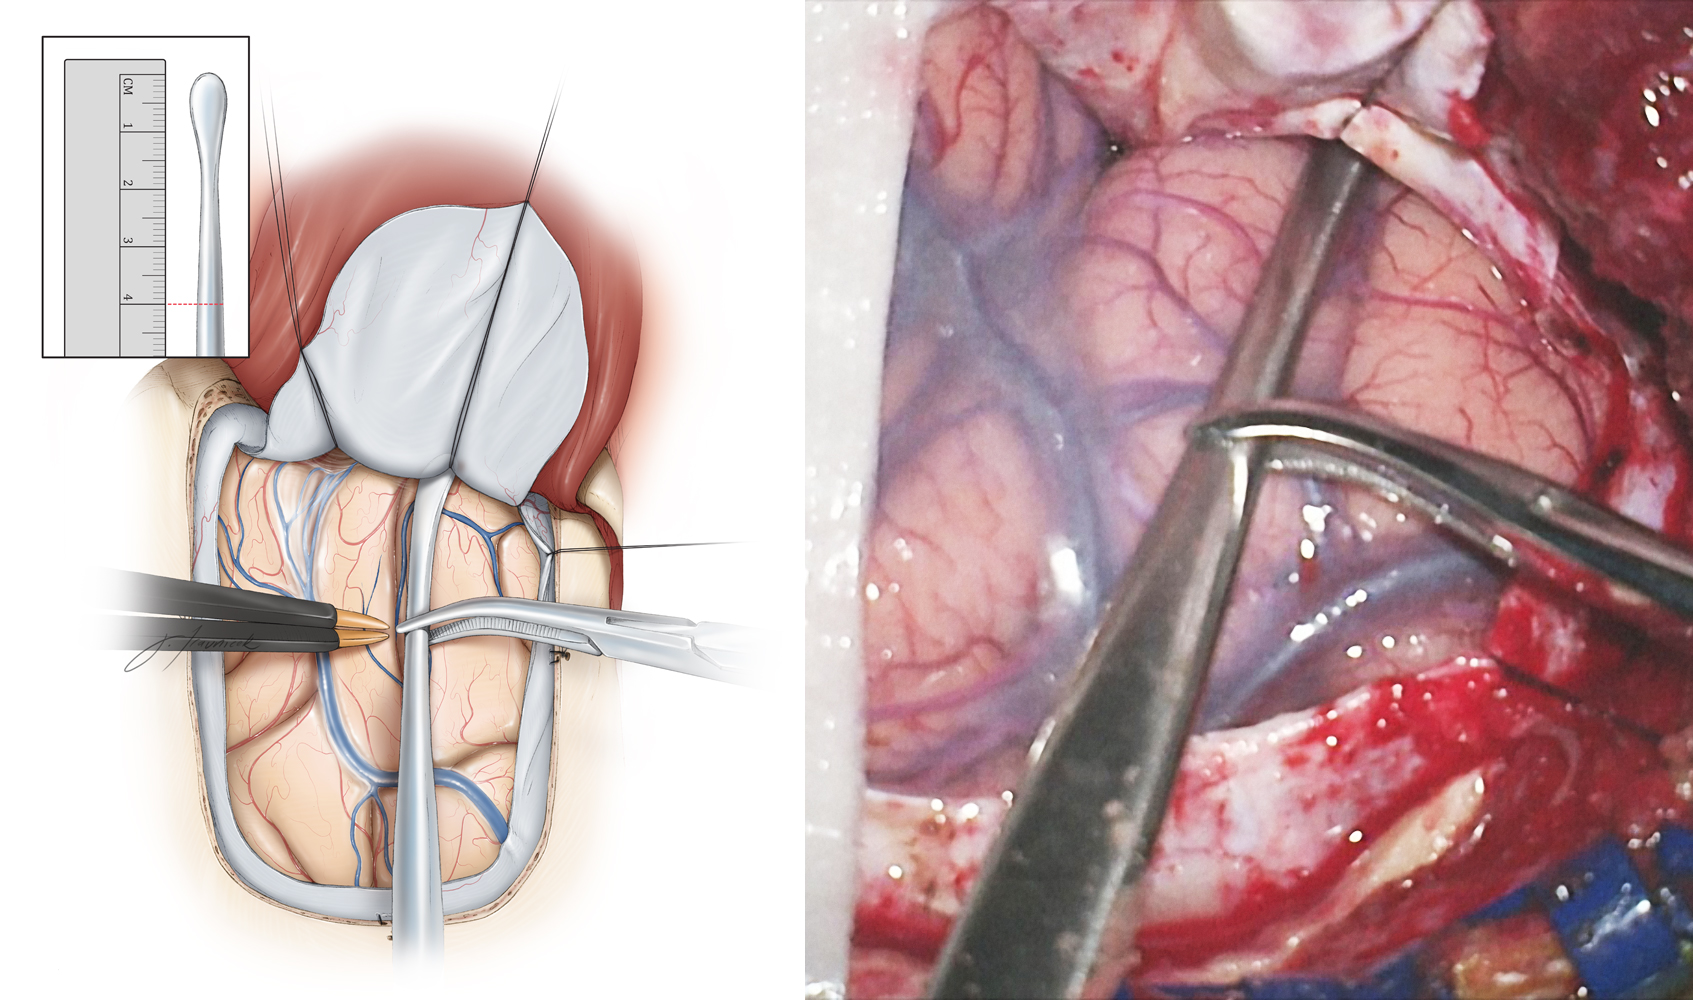 Figure 9: I use a #1 Penfield dissecting instrument to determine the extent of the lobectomy measured from the temporal tip. I mark the 4.0-cm line on the instrument (inset image) and then slide the instrument over the middle temporal gyrus until the tip of the instrument touches the anterior temporal fossa just below the sphenoid wing. The extent of the lobectomy from the temporal tip is marked on the cortex with an attempt to preserve the middle temporal veins located anterior to the vein of Labbe. The extent of neocortical resection is approximately 4 cm and 3.5 cm for the nondominant and dominant temporal lobes, respectively.